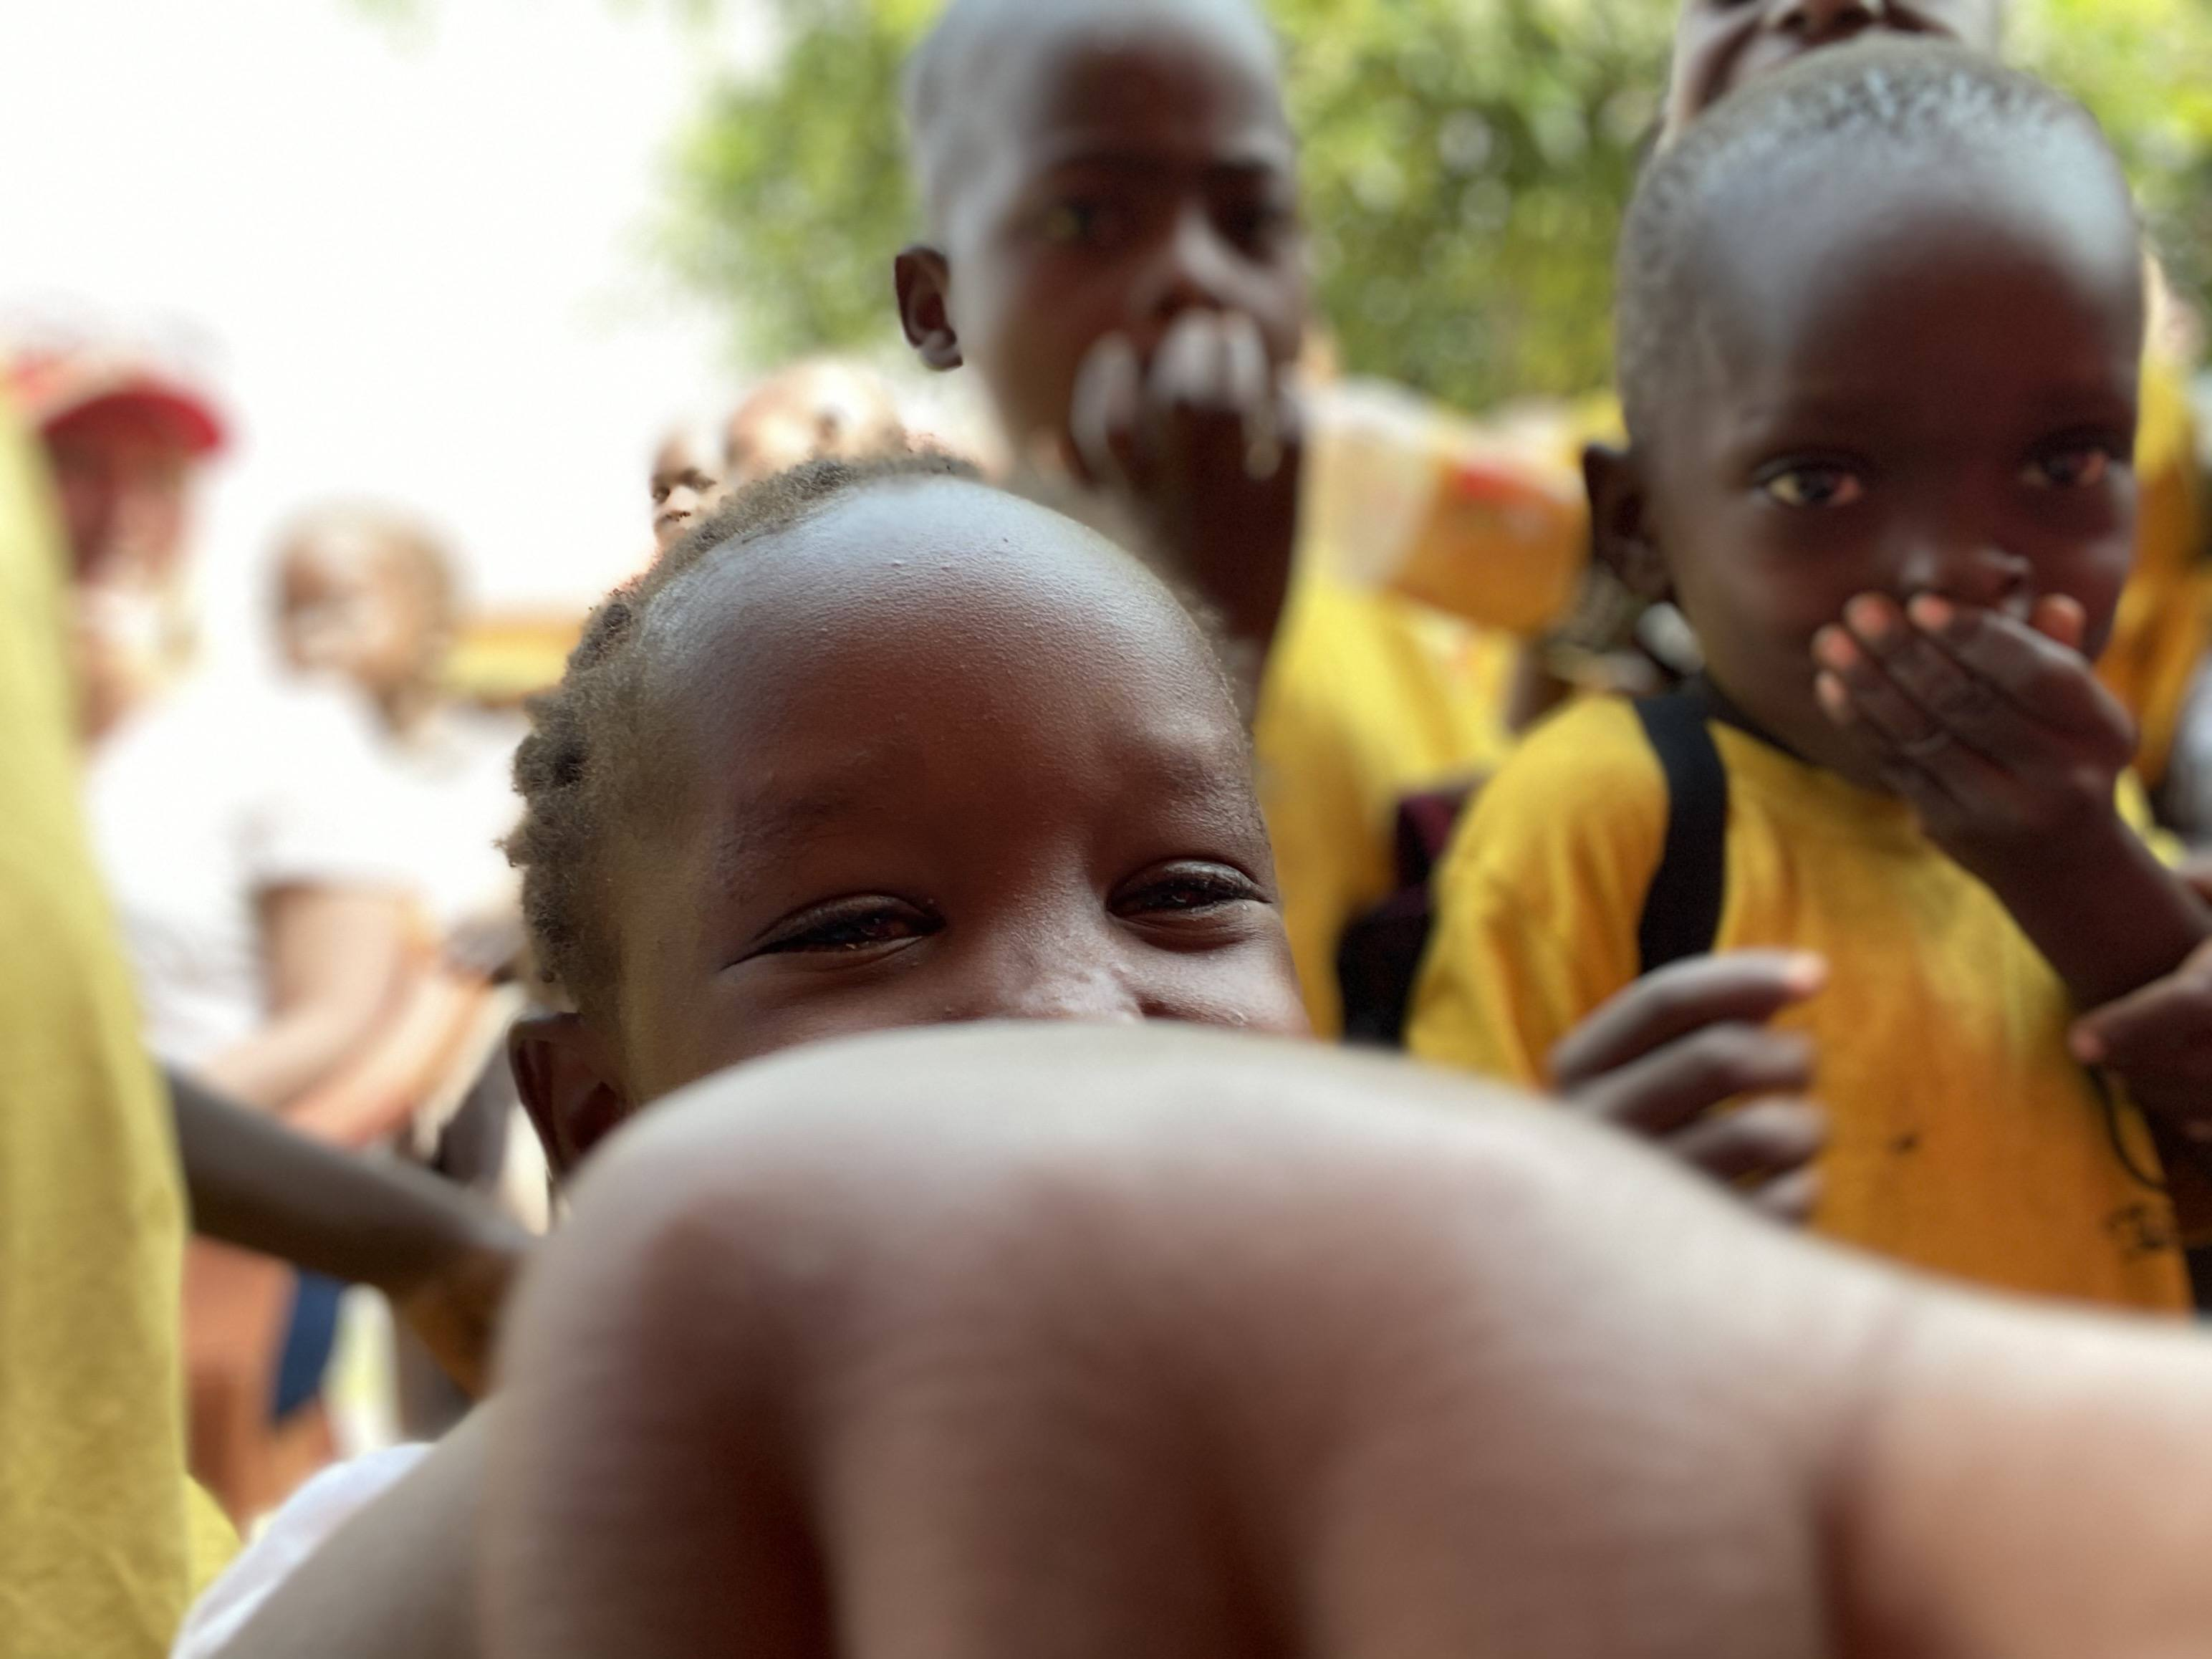 East African school children pointing at the camera